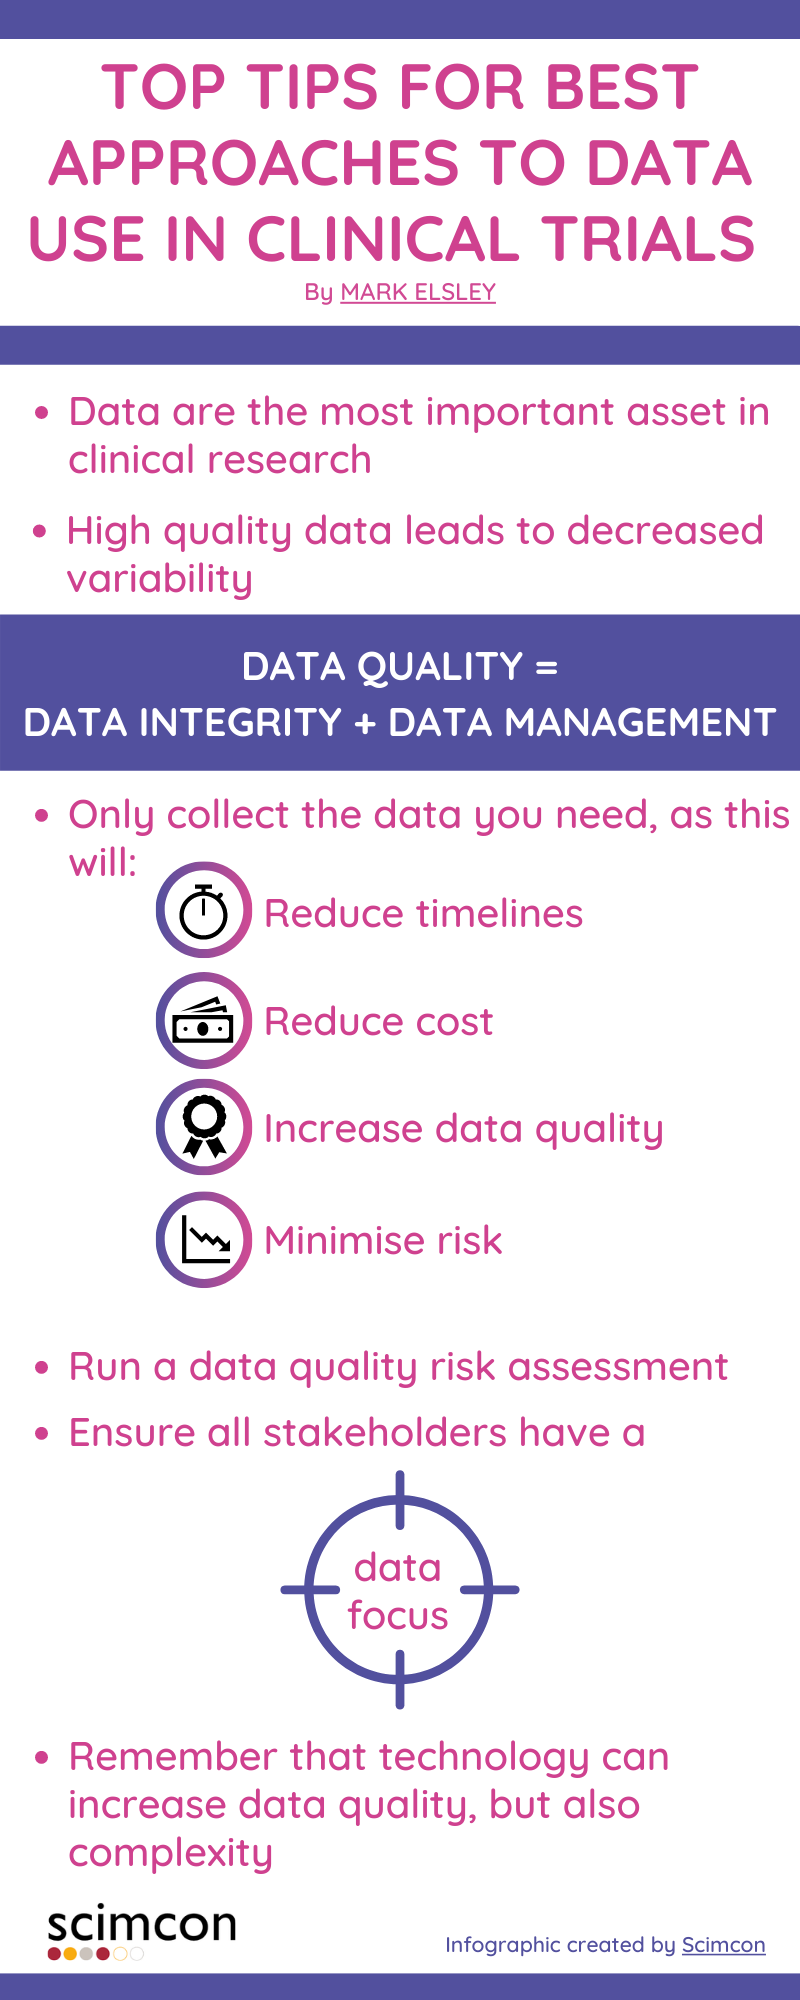 Mark Elsley outlines top tips for clinical trial data management in this inforgraphic.